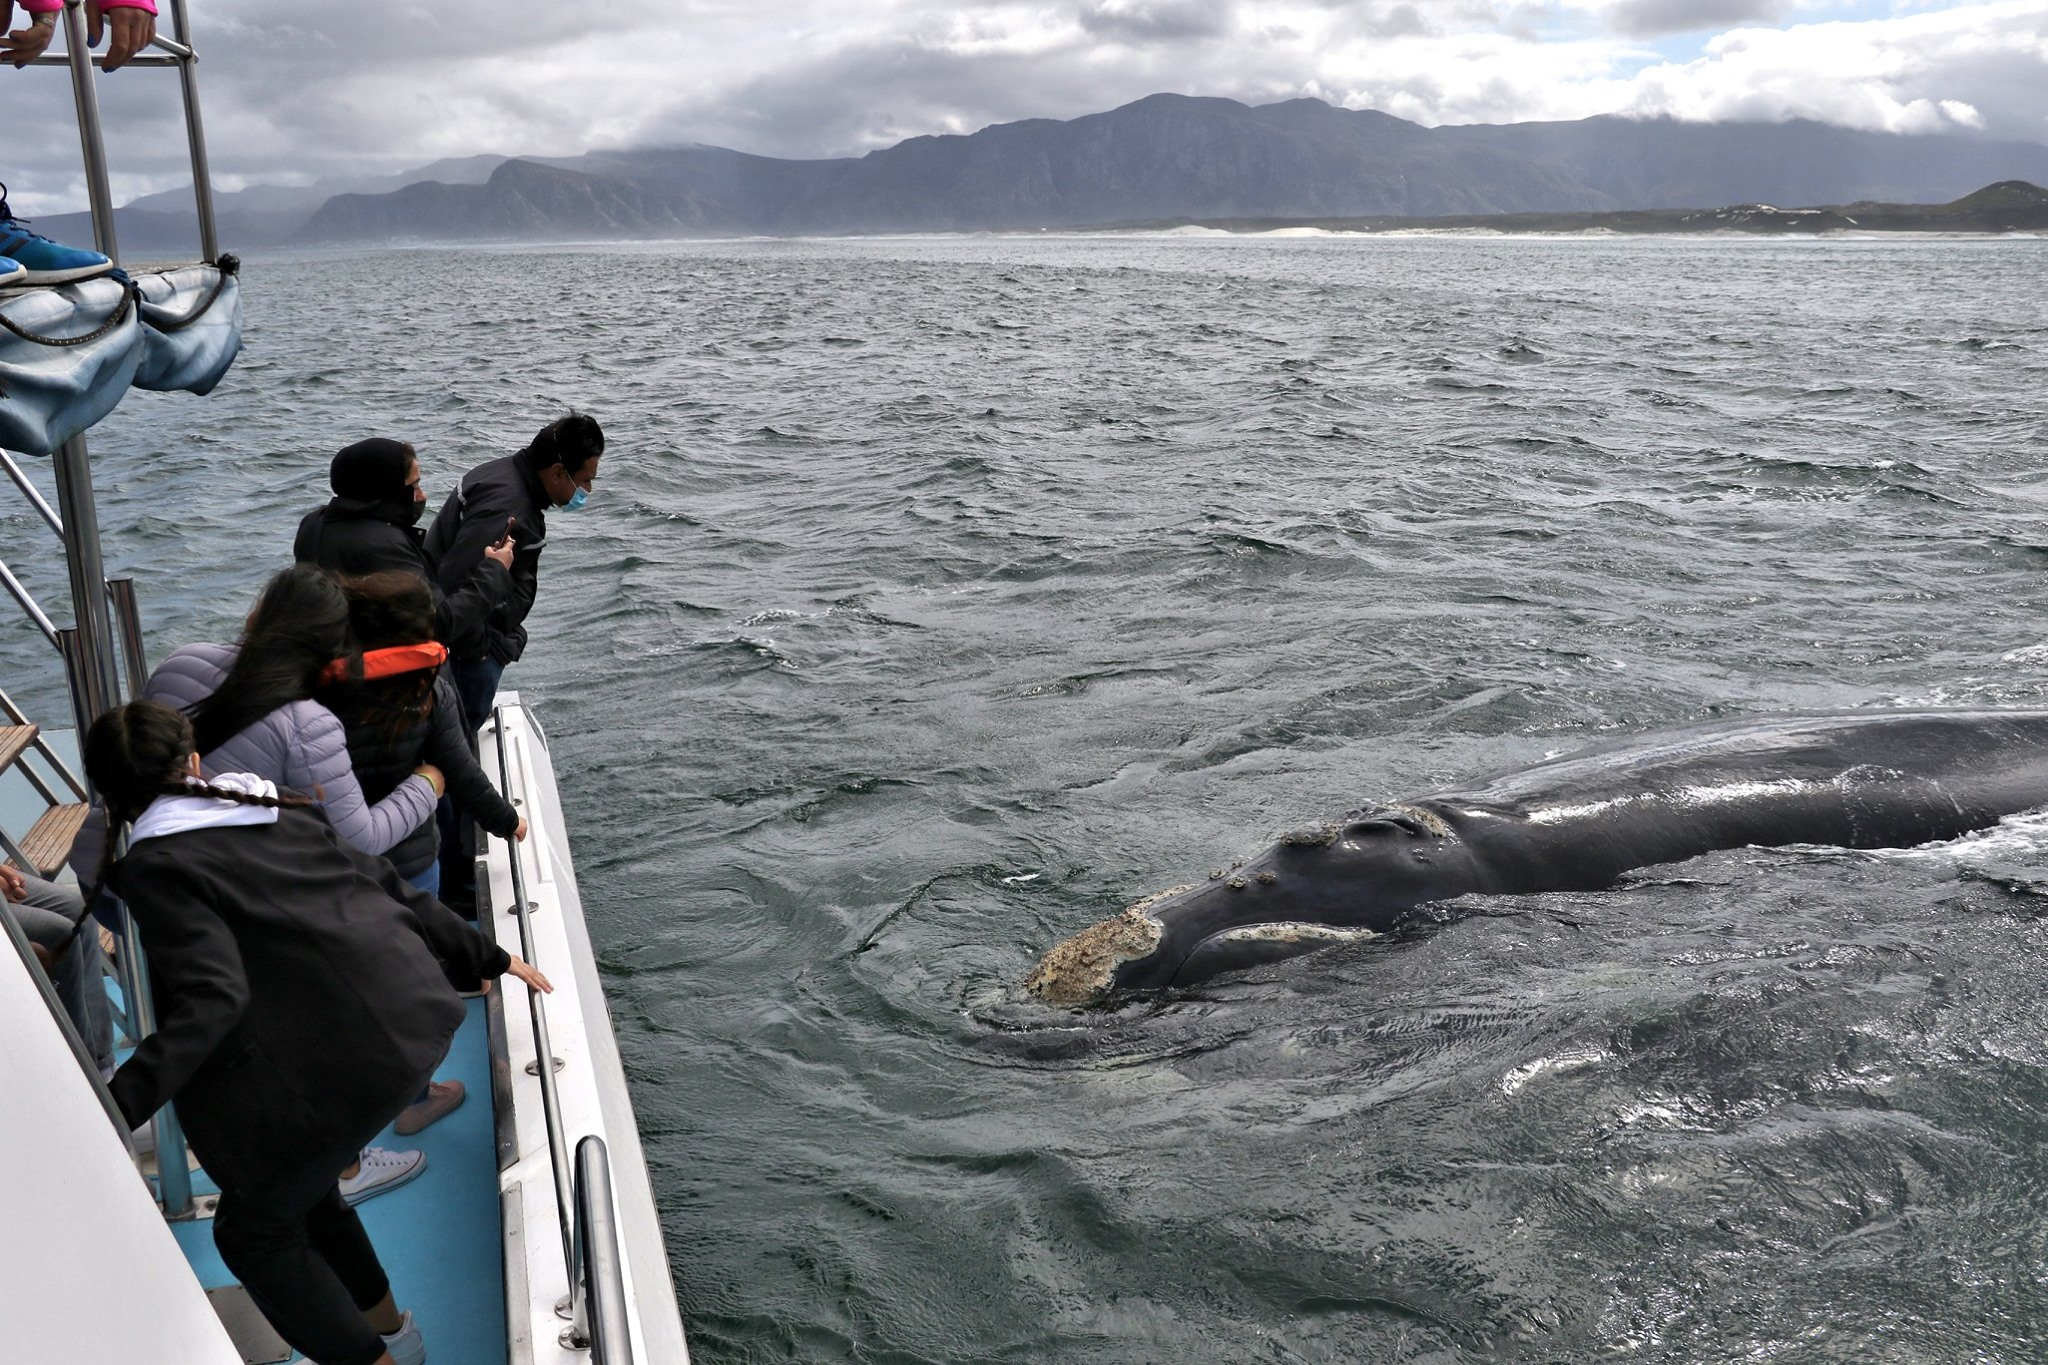 Southern Right Whale approaching the boat